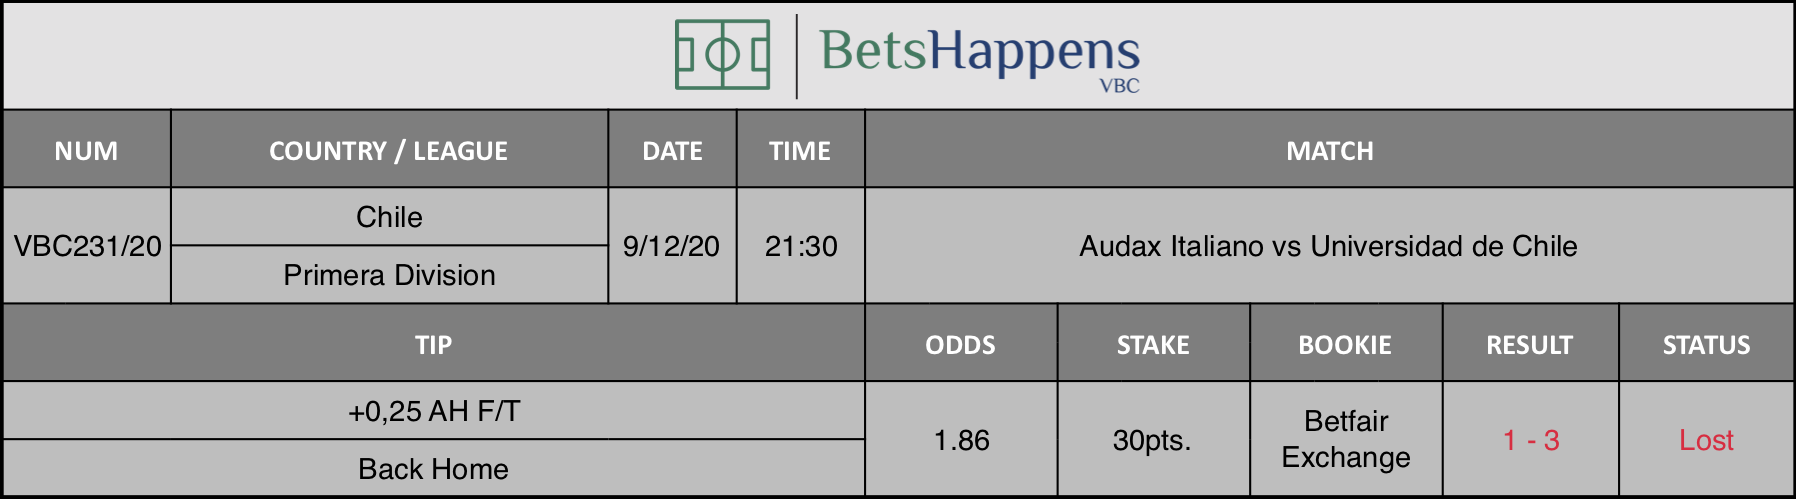 Results of our tip for the Audax Italiano vs Universidad de Chile match where +0,25 AH F/T Back Home is recommended.